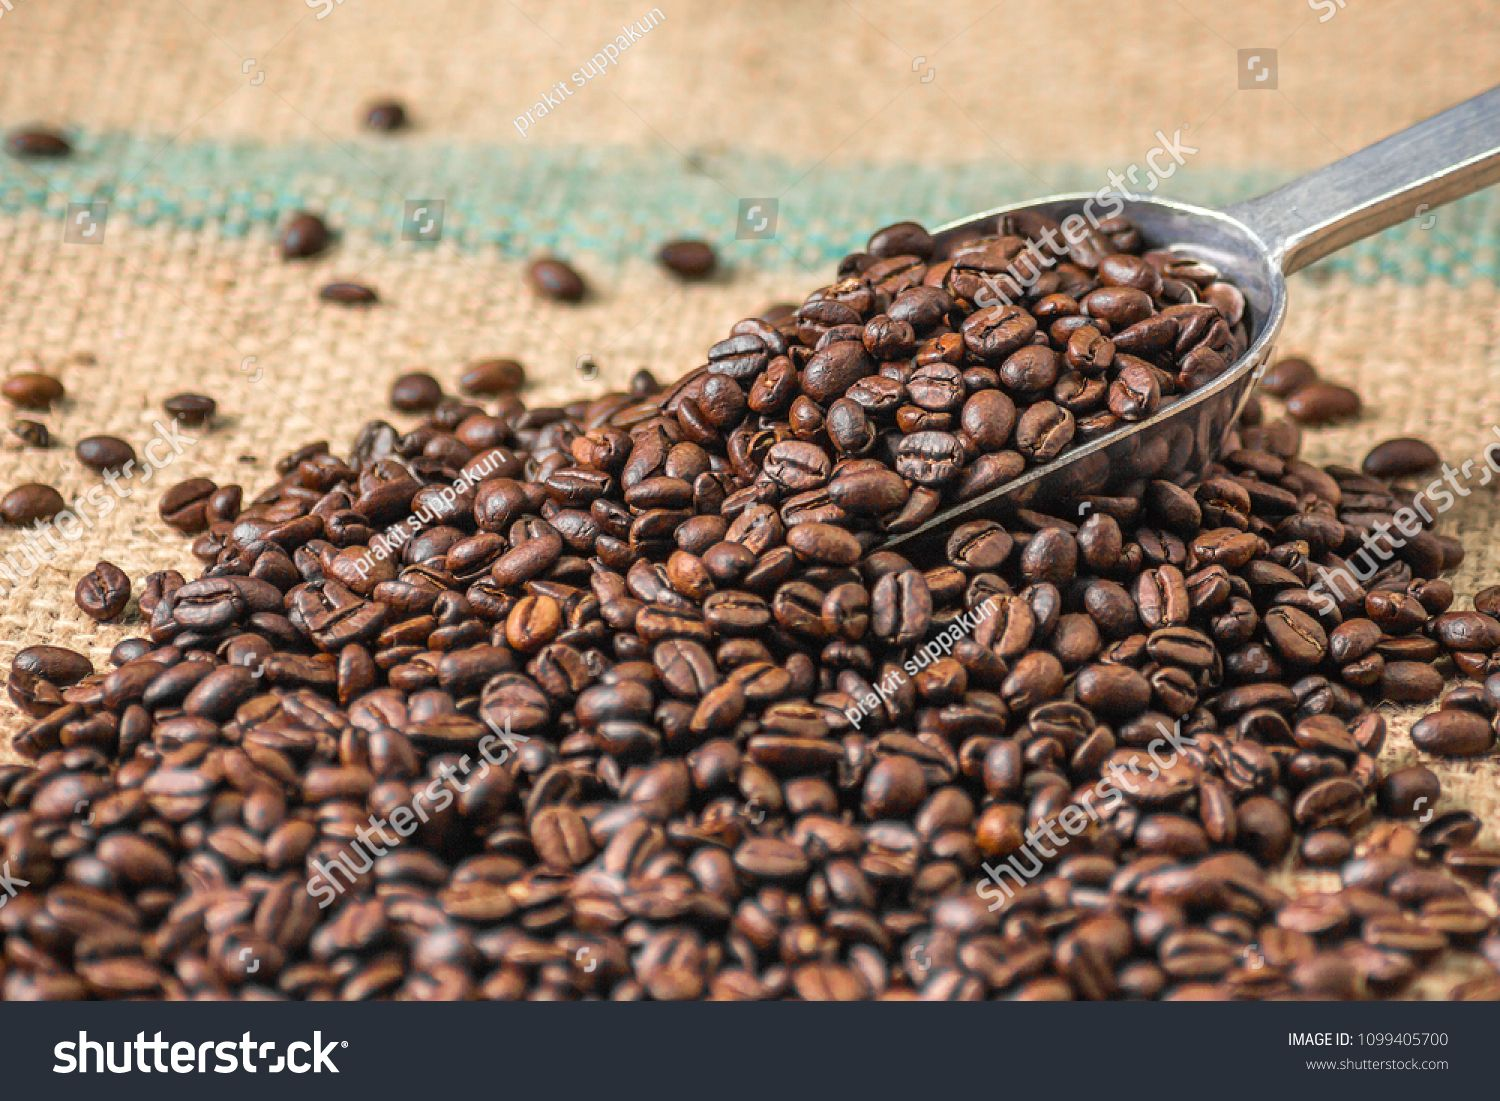 Ncoffee Beans On A Sack With A Lap Ad Paid Beans Ncoffee Lap Sack In 2020 Beans Coffee Beans Stock Photos